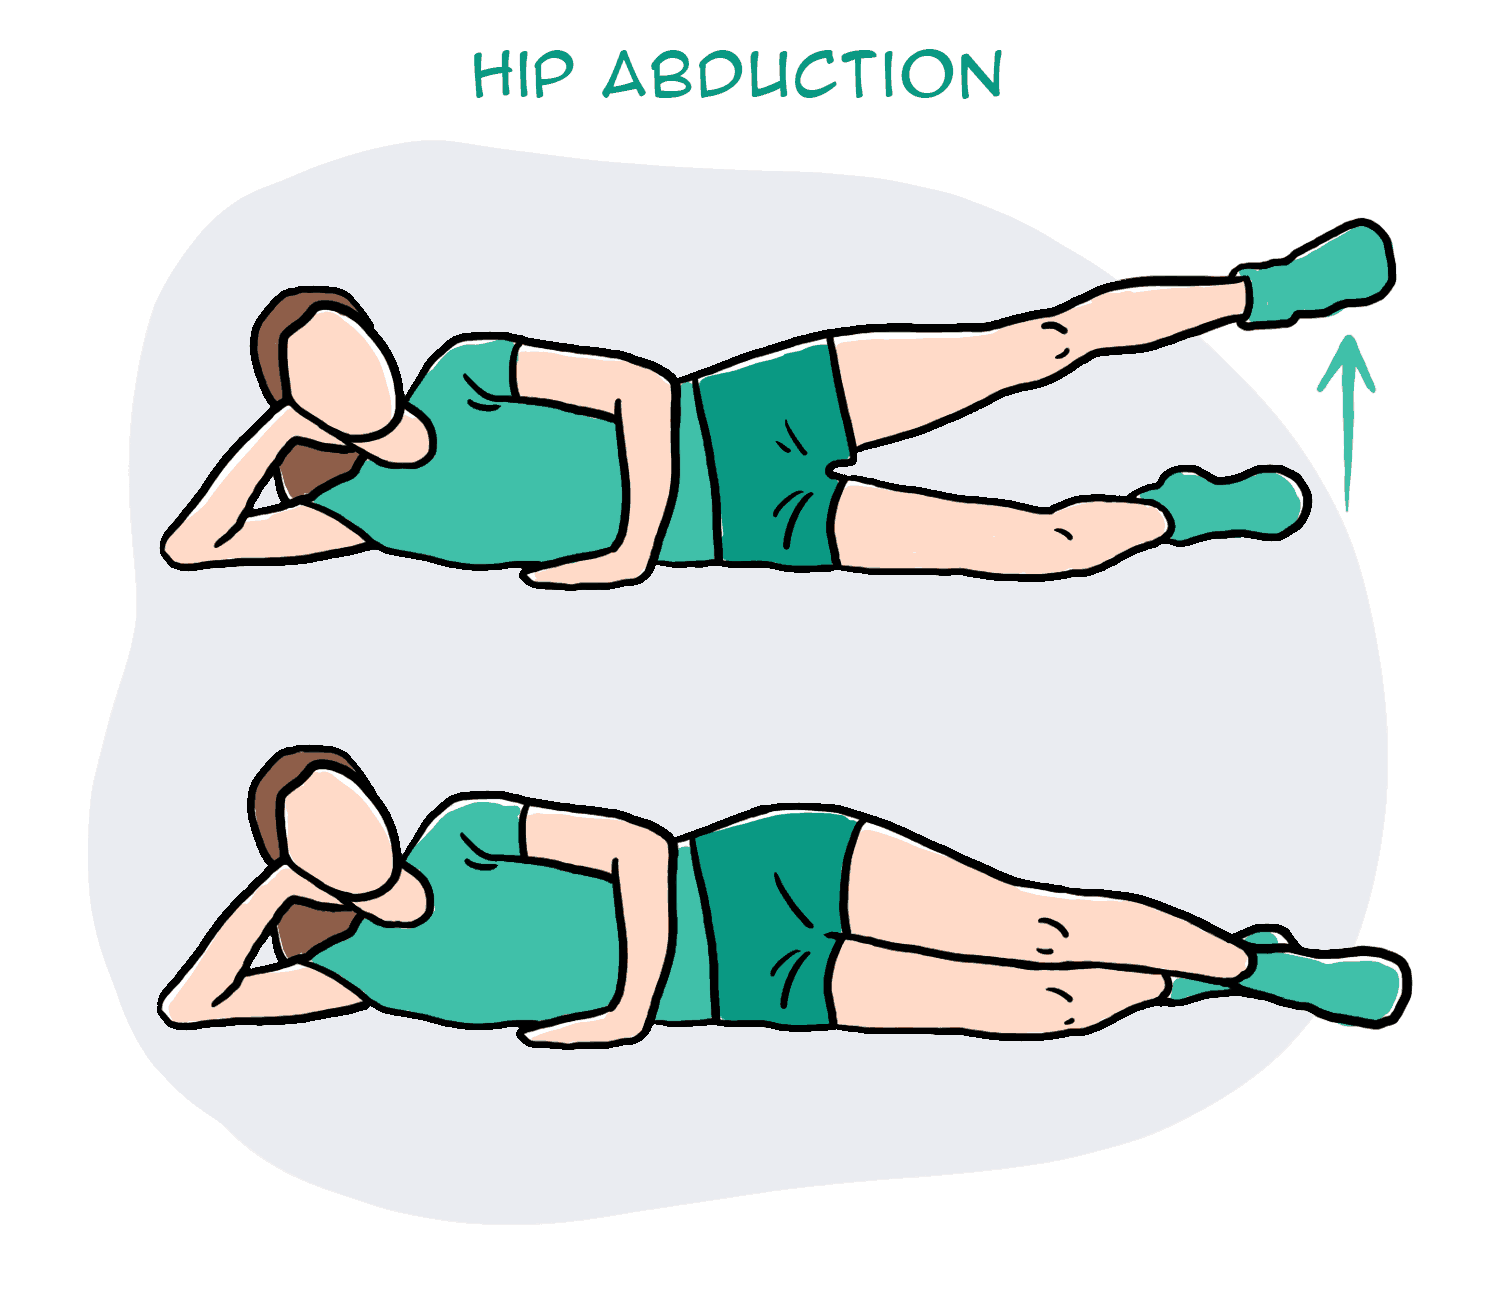 Hip Abduction Exercise